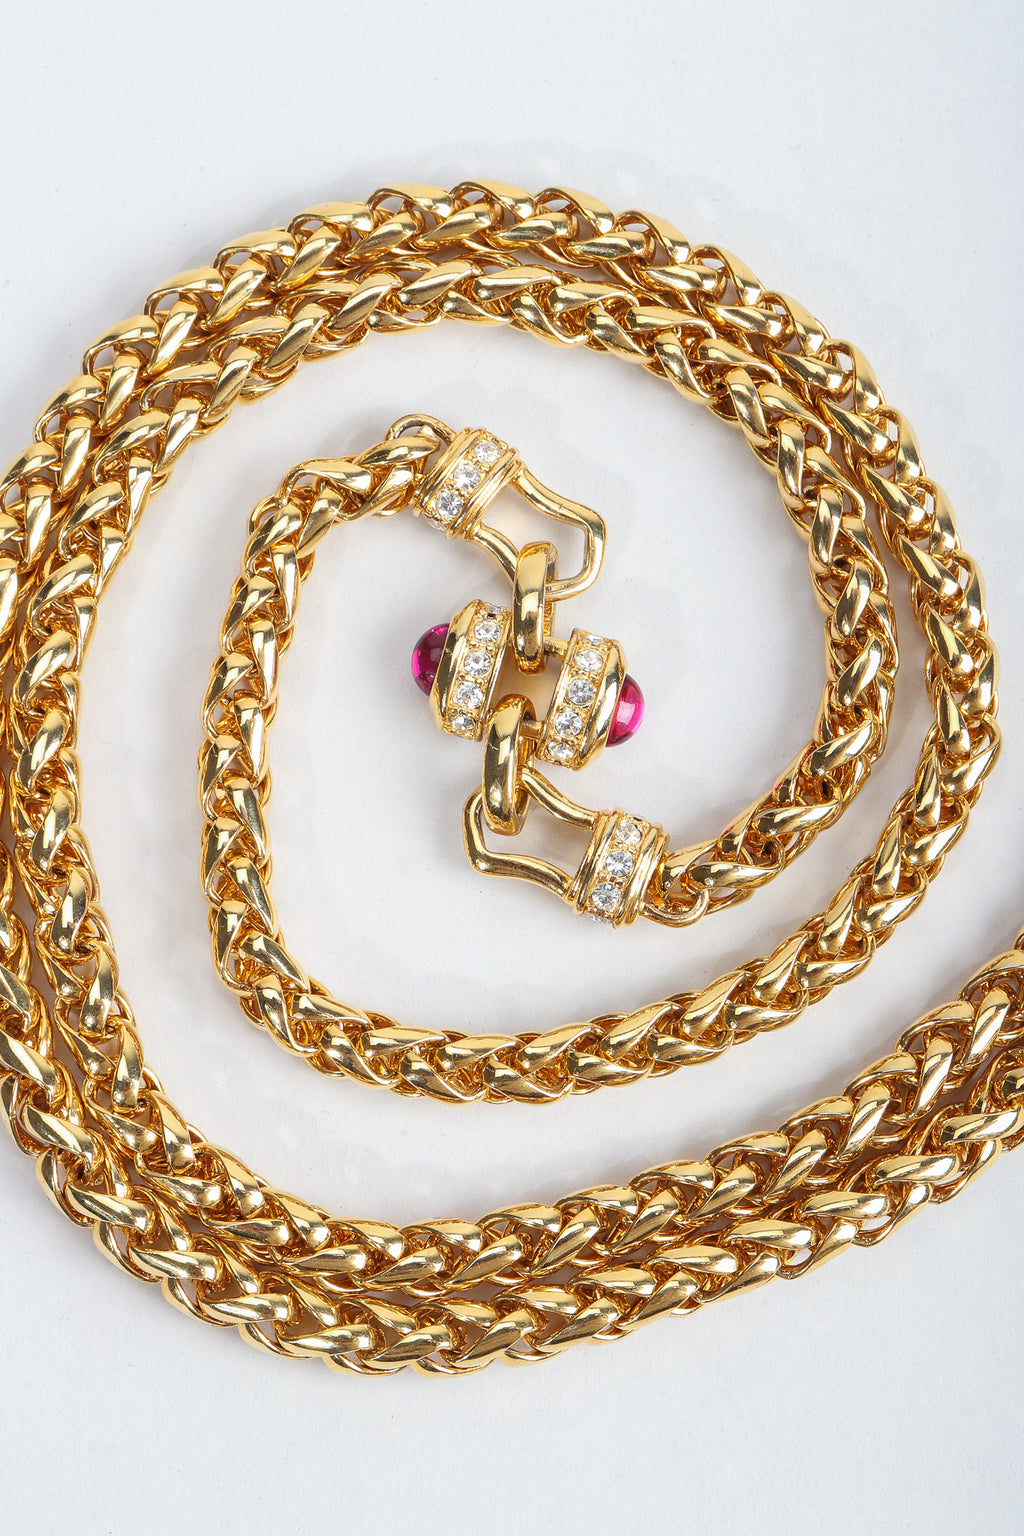 Vintage Nolan Miller Pink Jeweled Cabochon Spiga Gold Chain Necklace swirl at Recess